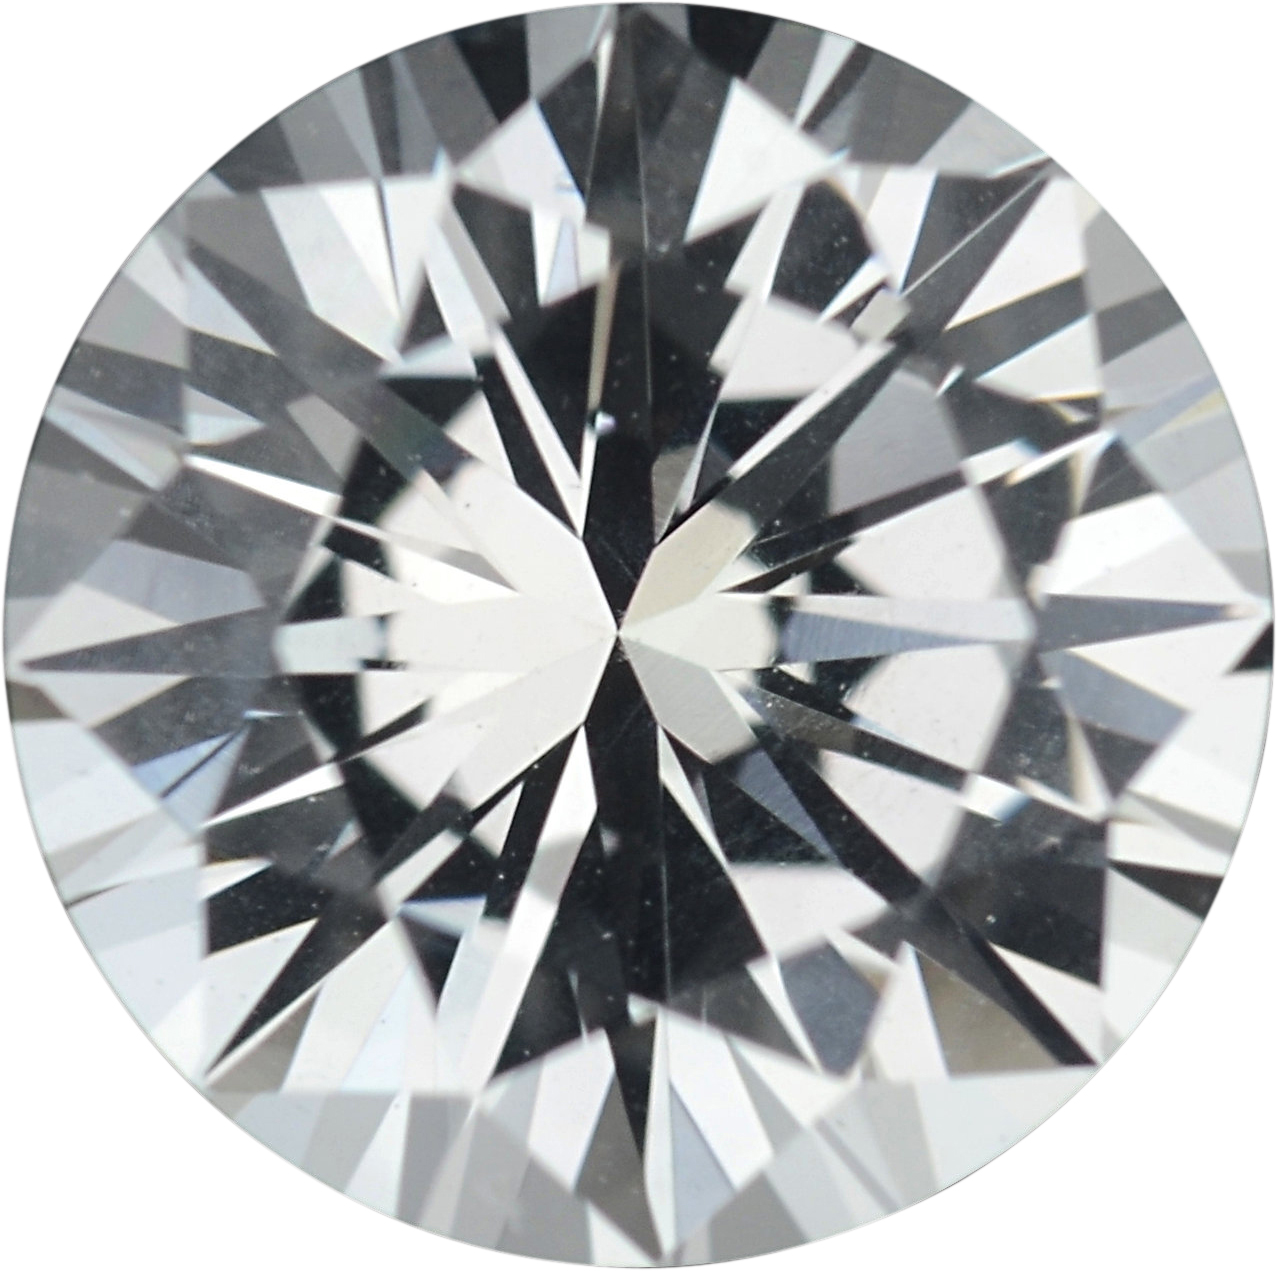 1.27 carats White Loose Sapphire Gemstone in Round Cut, 6.51 mm